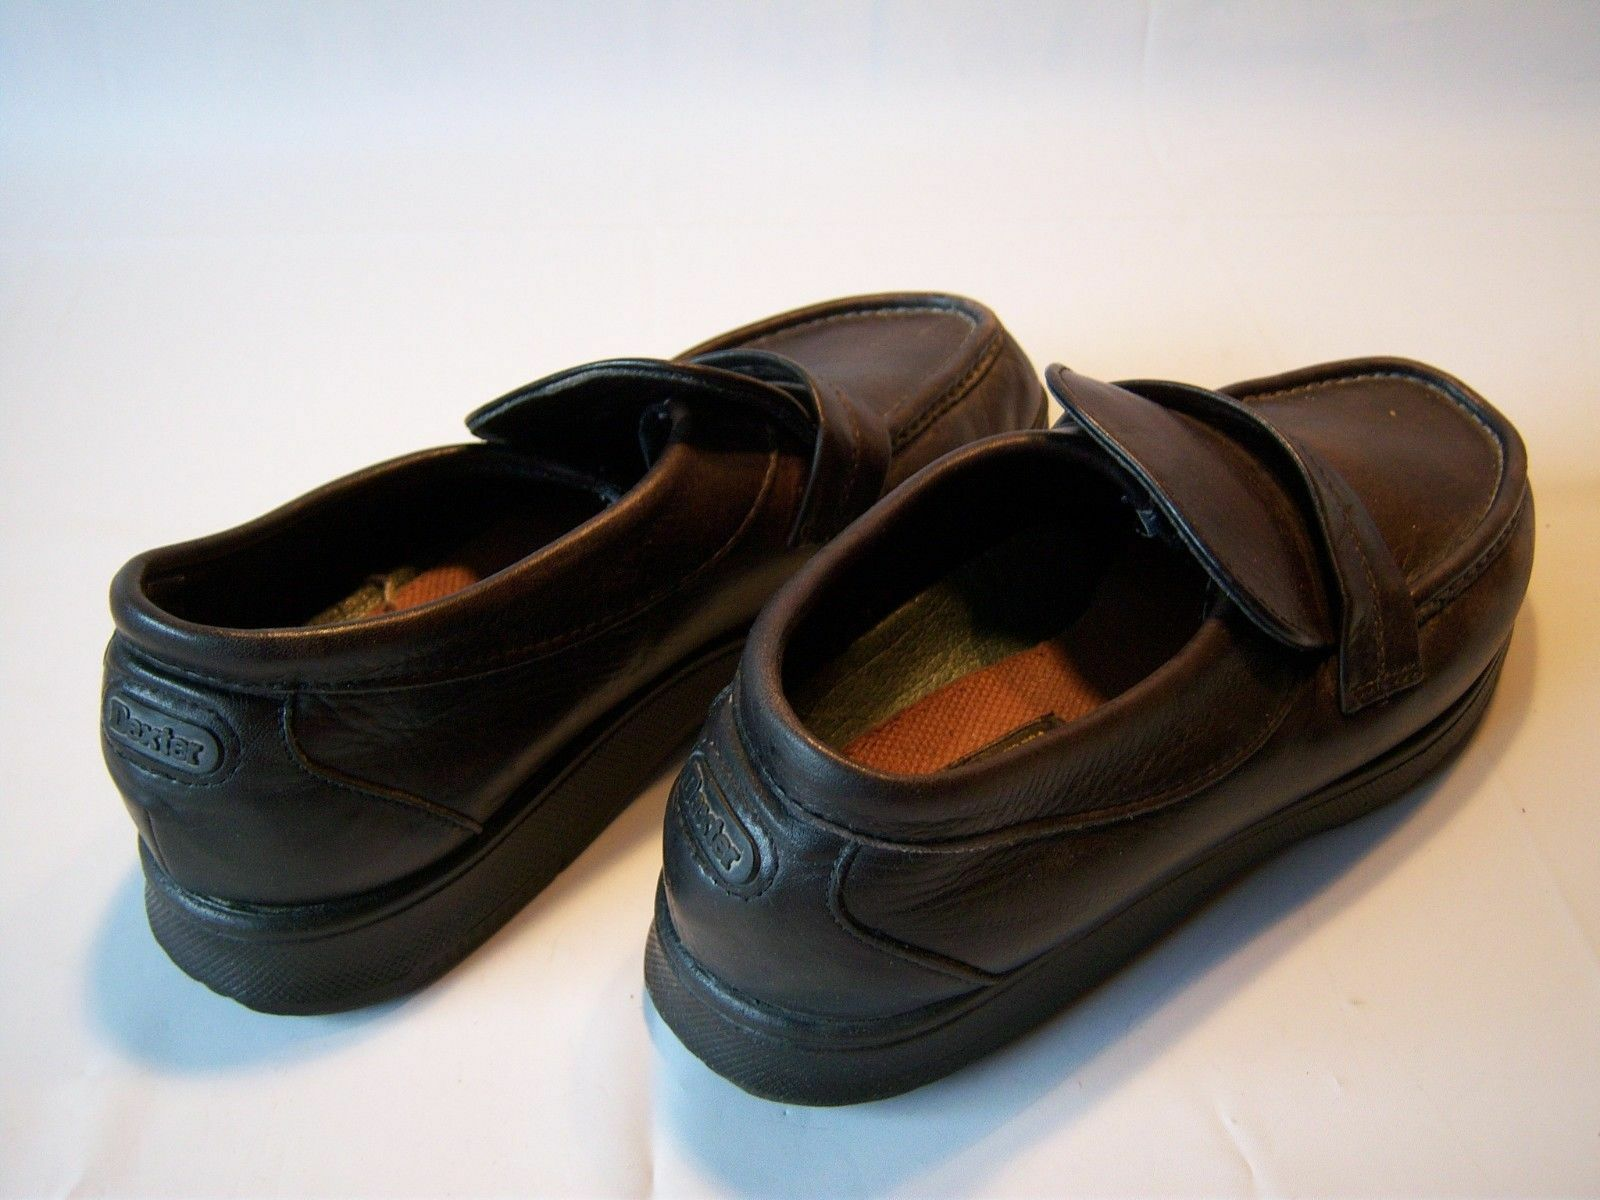 Dexter Walkmocs Casual Leather Loafers Women's Size Size Size 9 b97a13